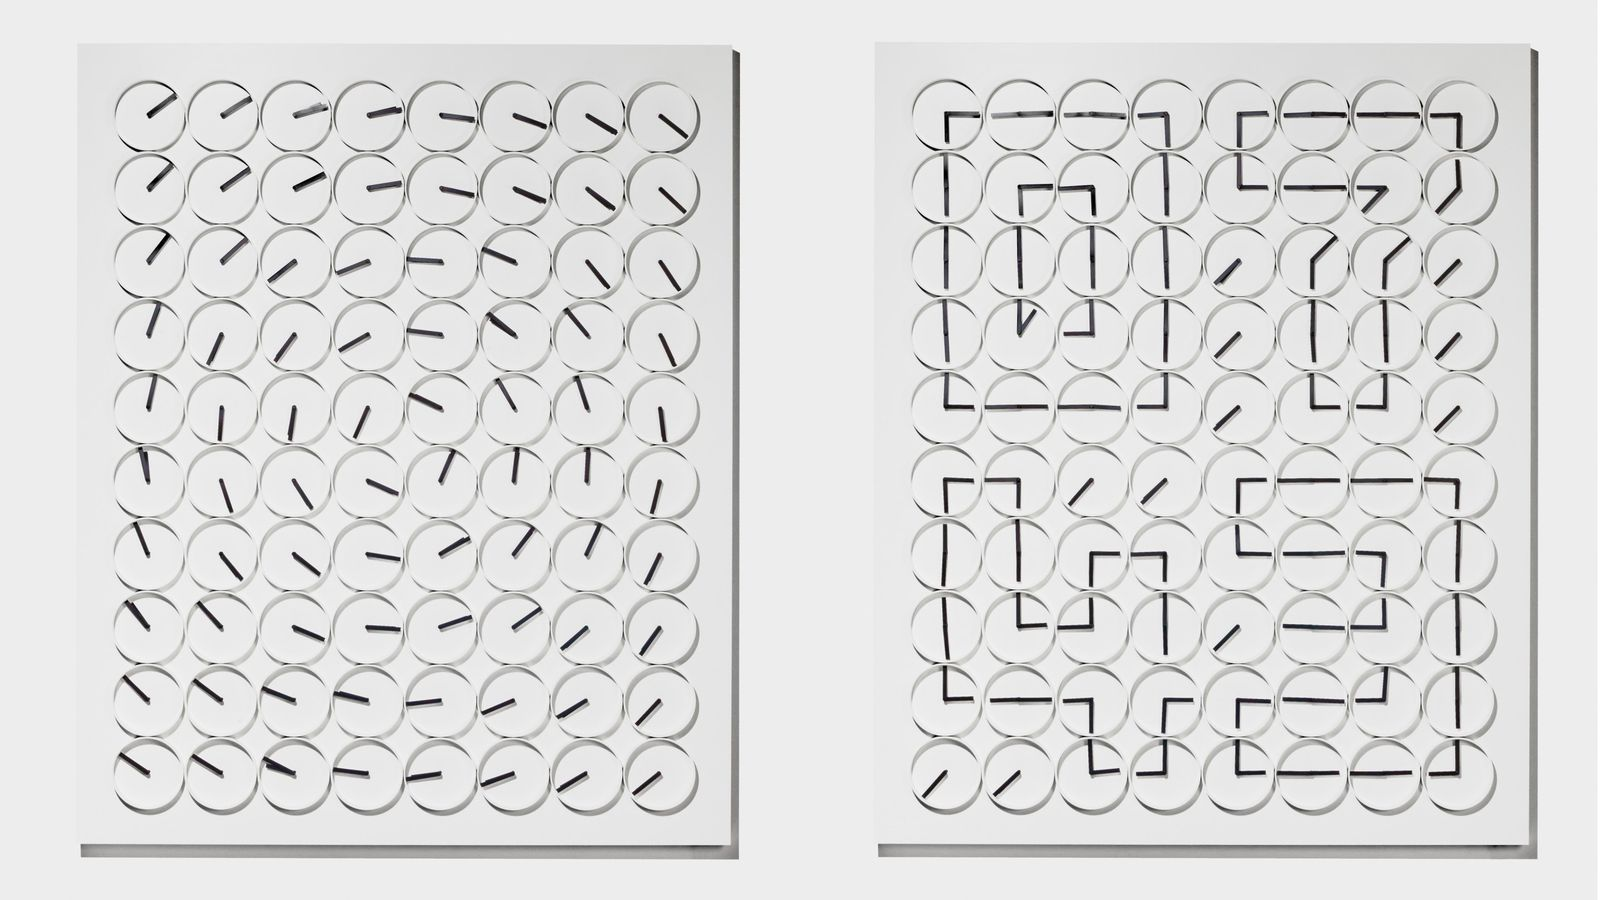 making digital time out of analog clocks is mesmerizing